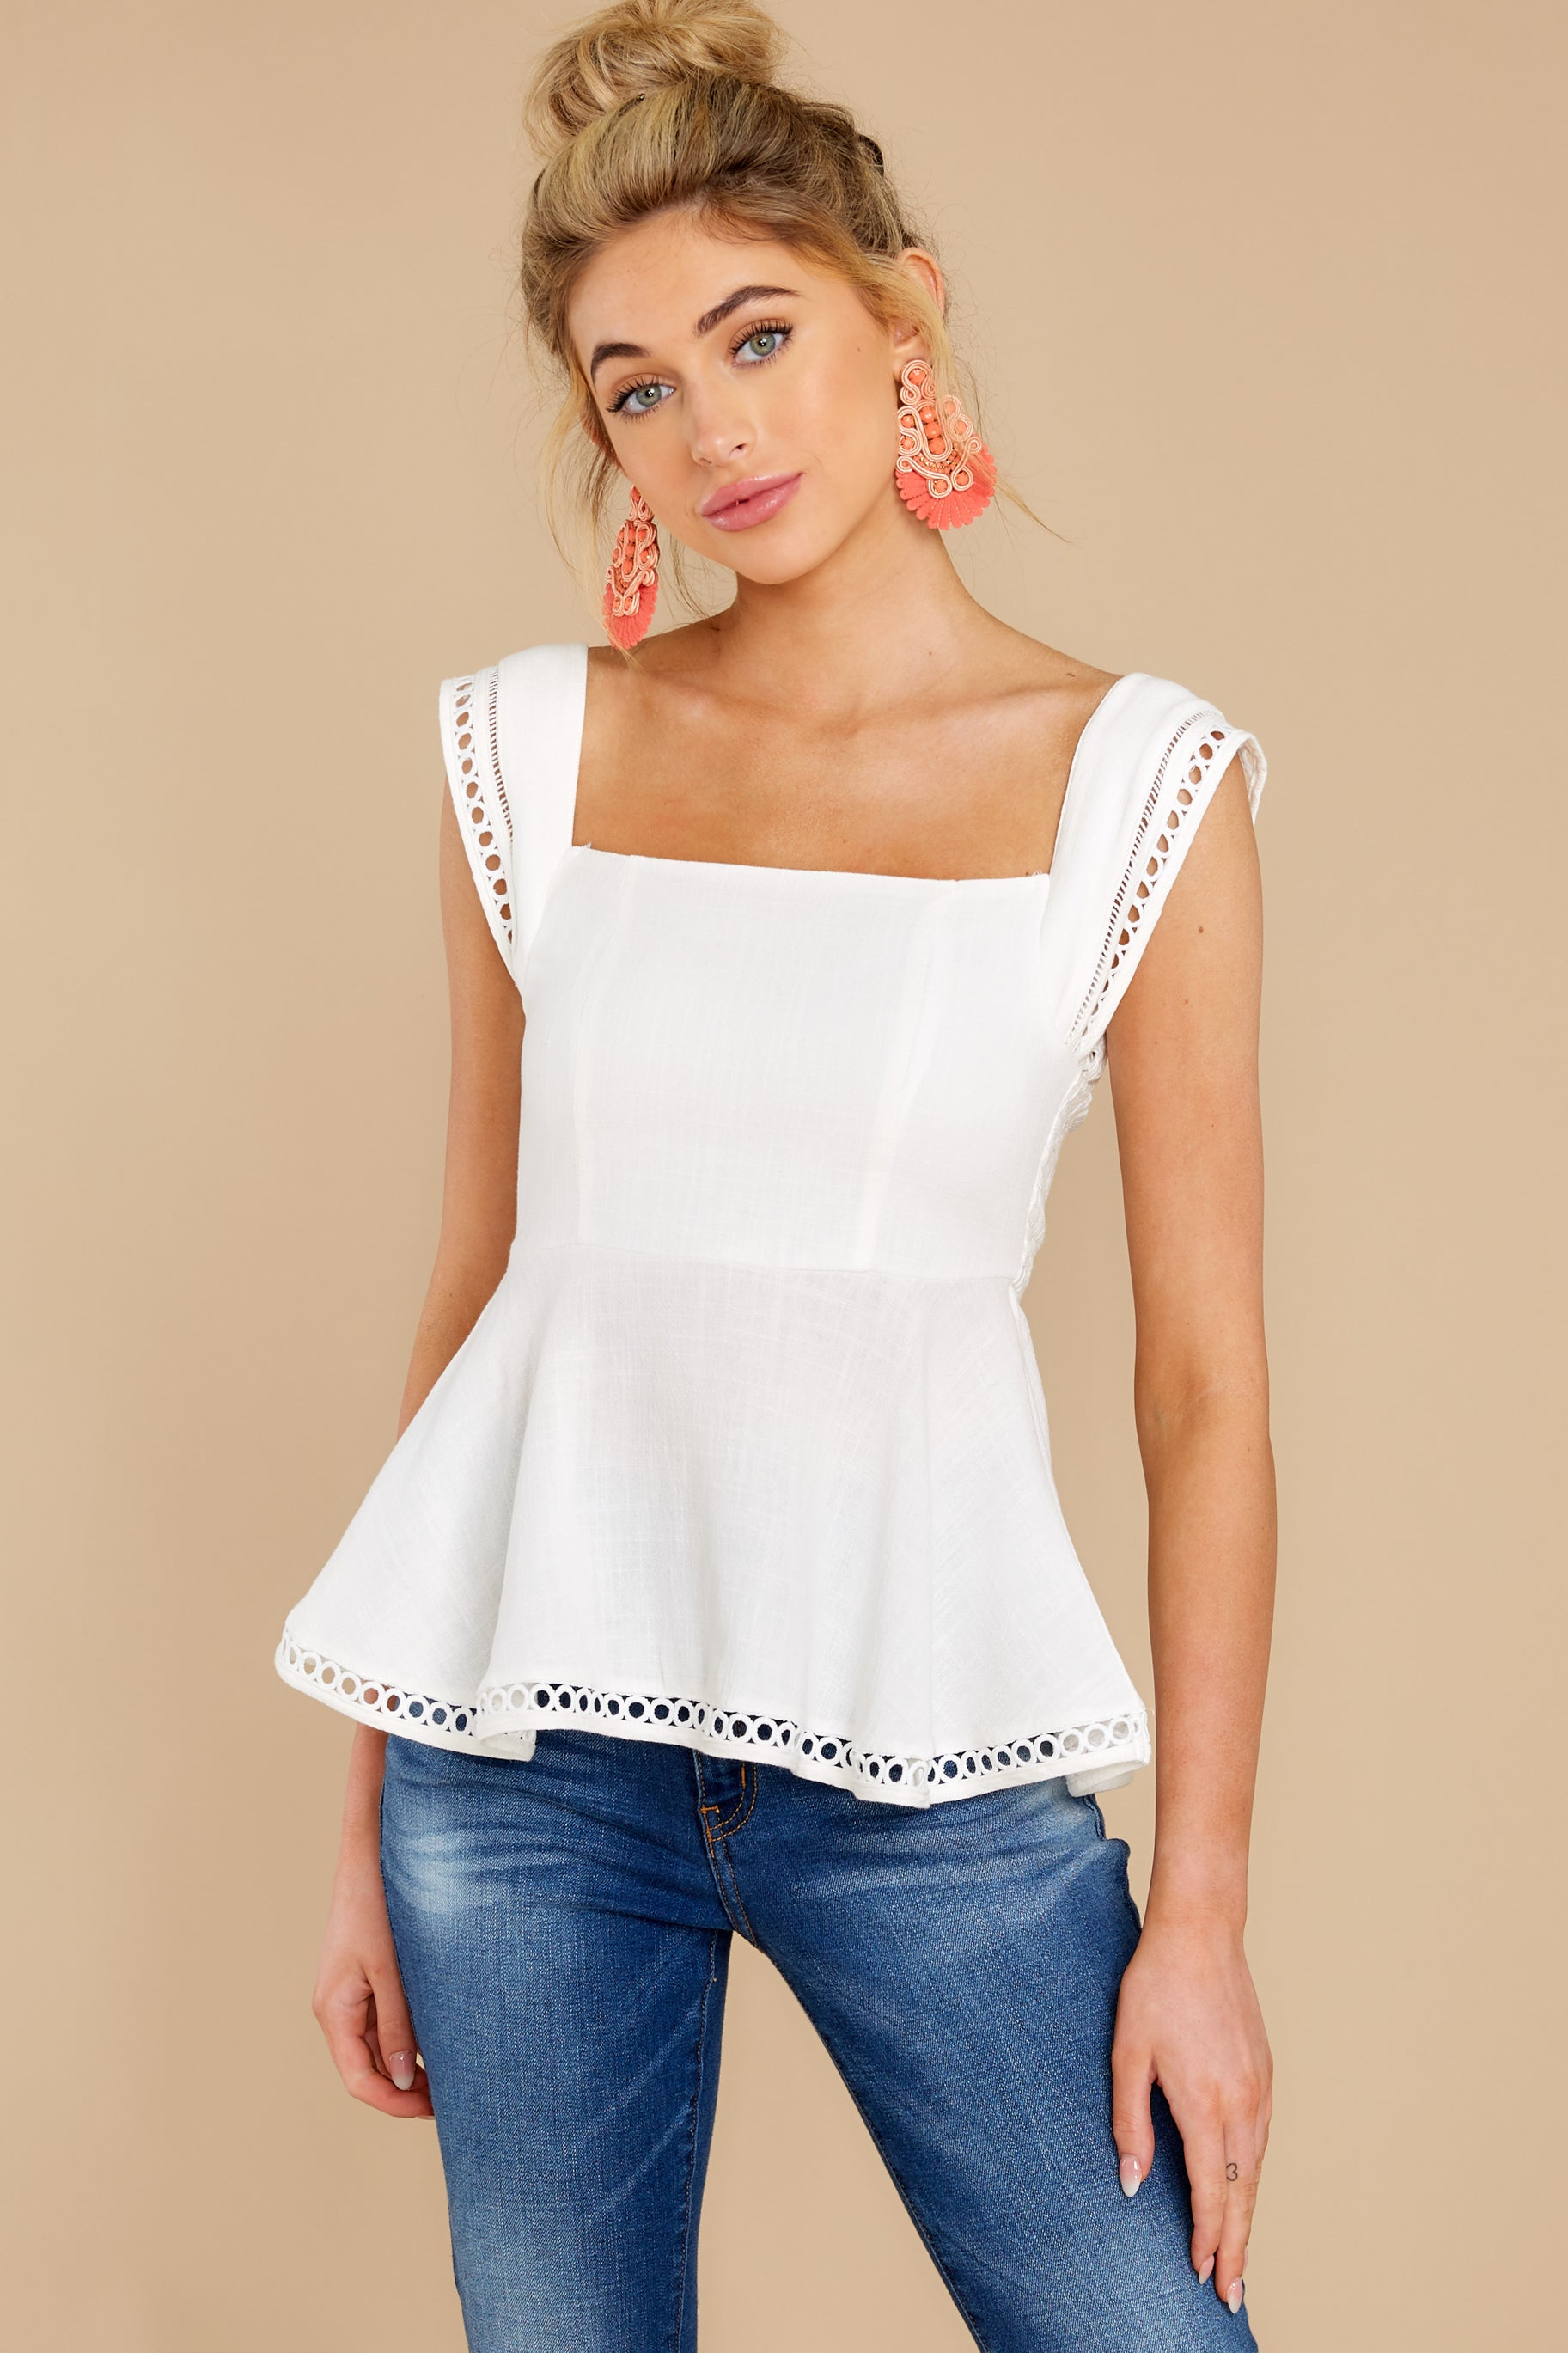 5 Looking Divine White Eyelet Top at reddress.com